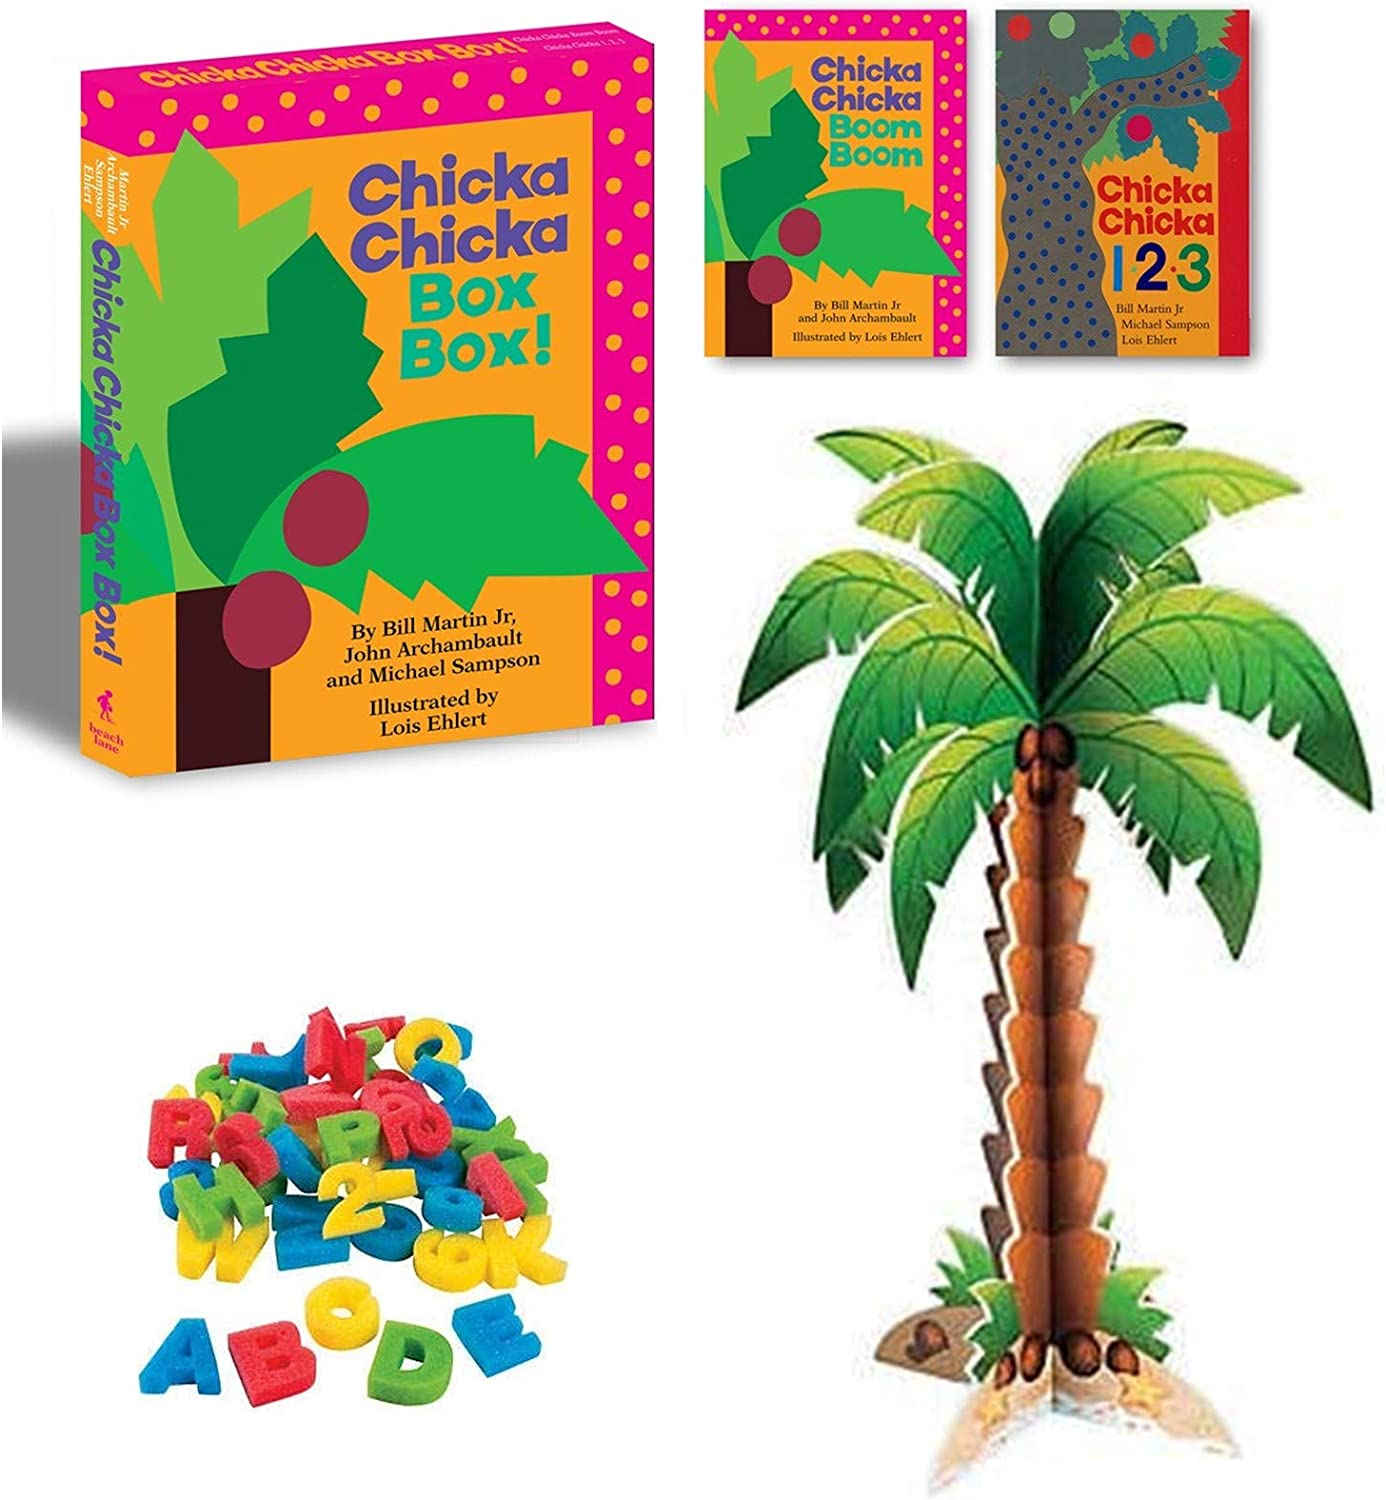 Amazon Com Chicka Chicka Boom Boom And Chicka Chicka 1 2 3 By Bill Martin Jr And Activity Gift Set Includes Alphabet Numbers Coconut Tree Toys Games